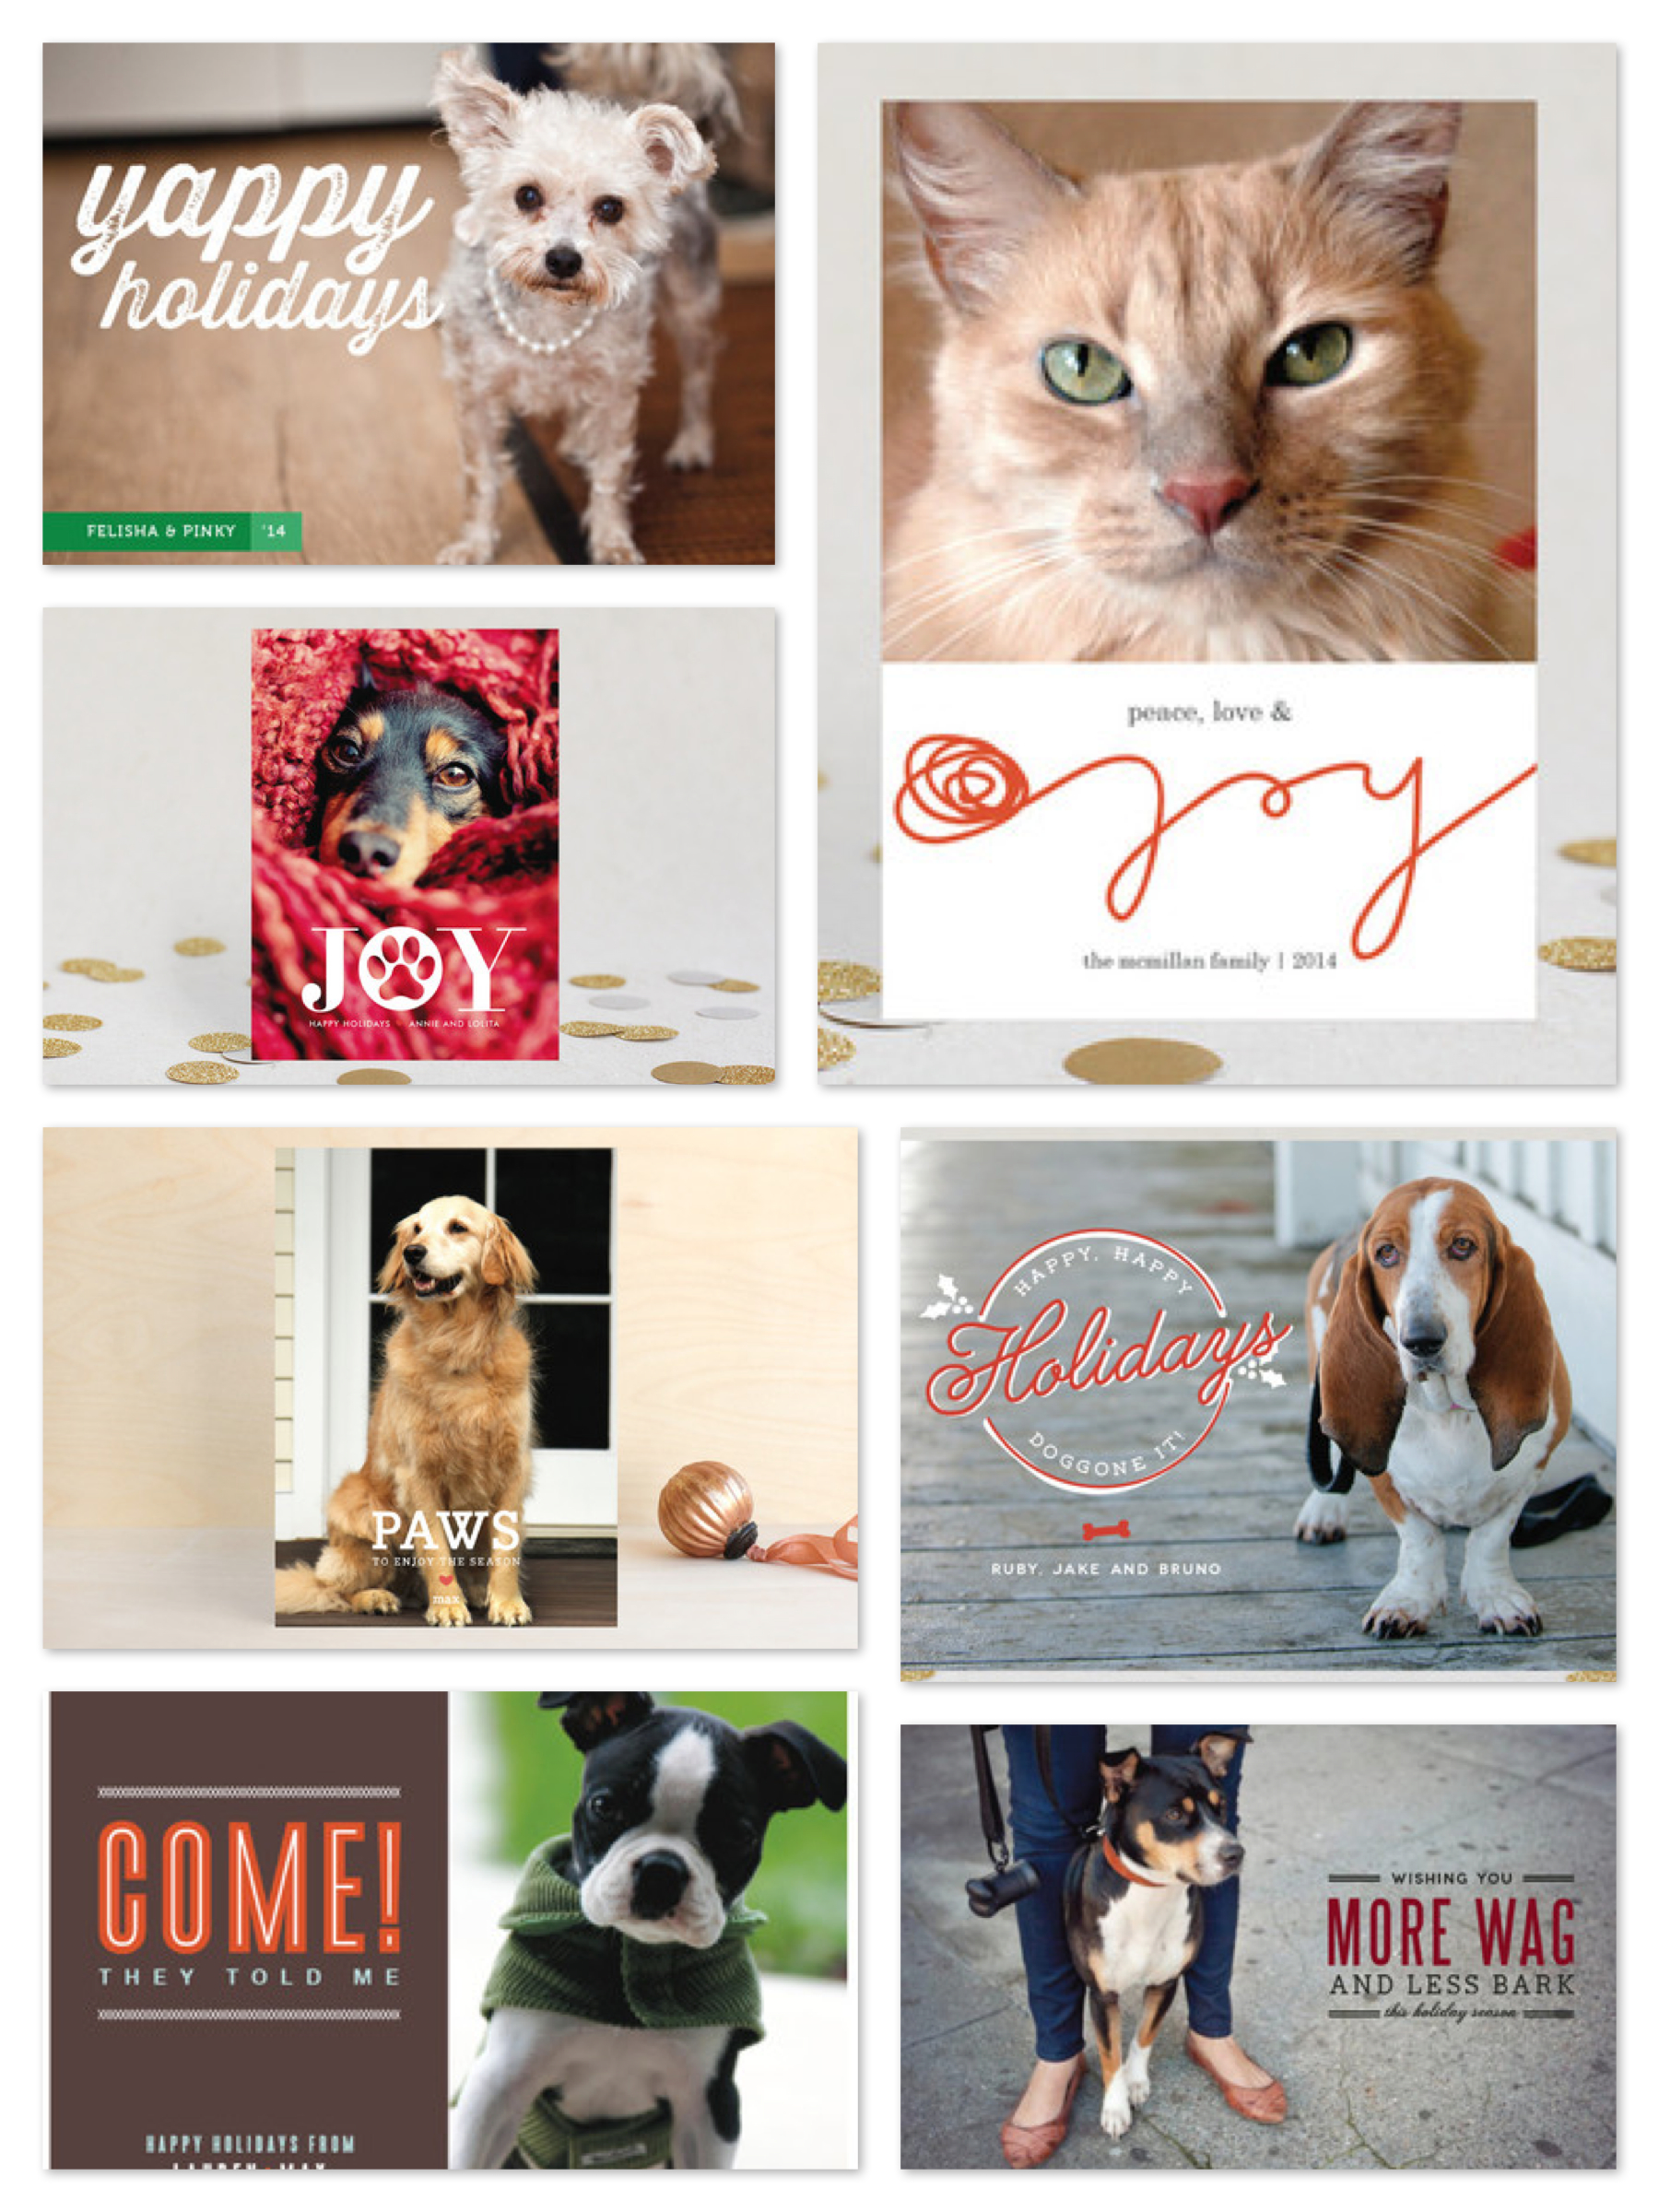 pet photo holiday cards best pet holiday cards - Best Holiday Cards